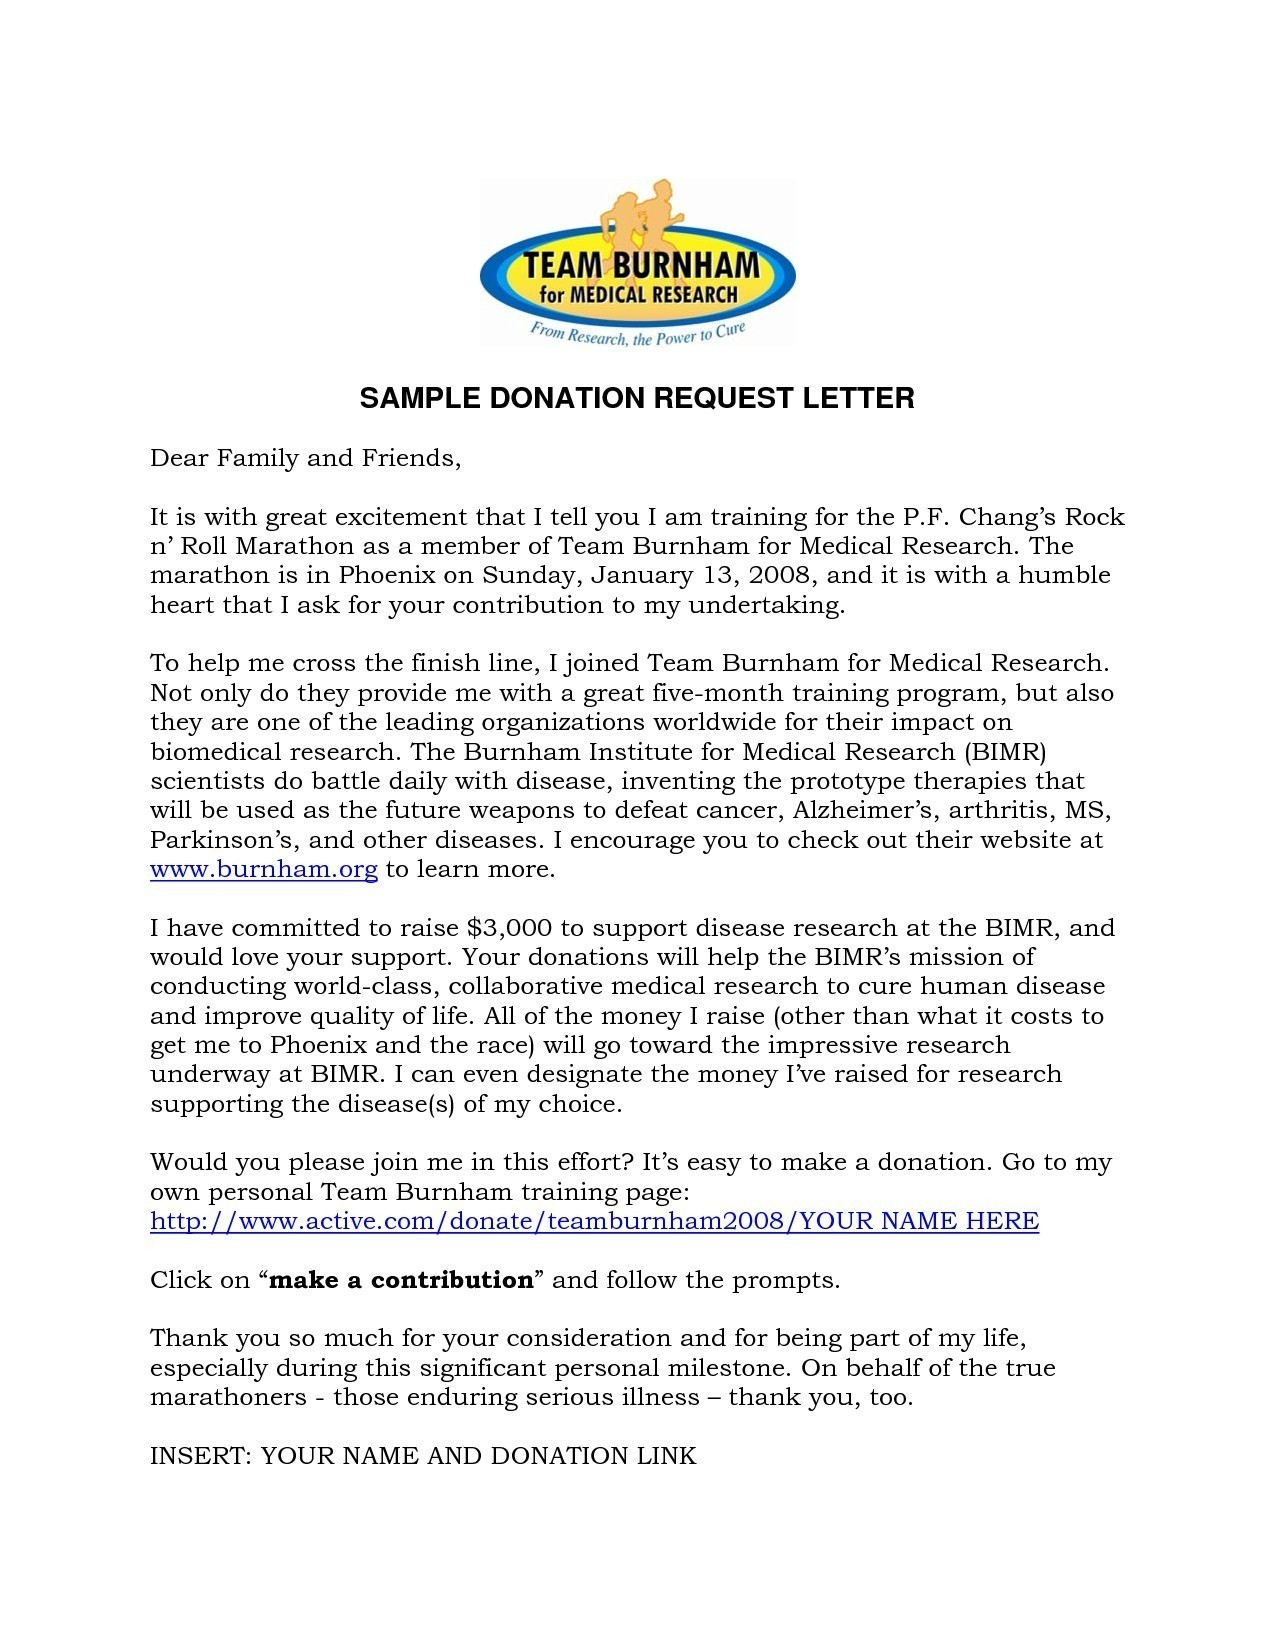 Letter for Donations for Fundraiser Template - Samples Letters Request Donation New Sample Letters for Request for